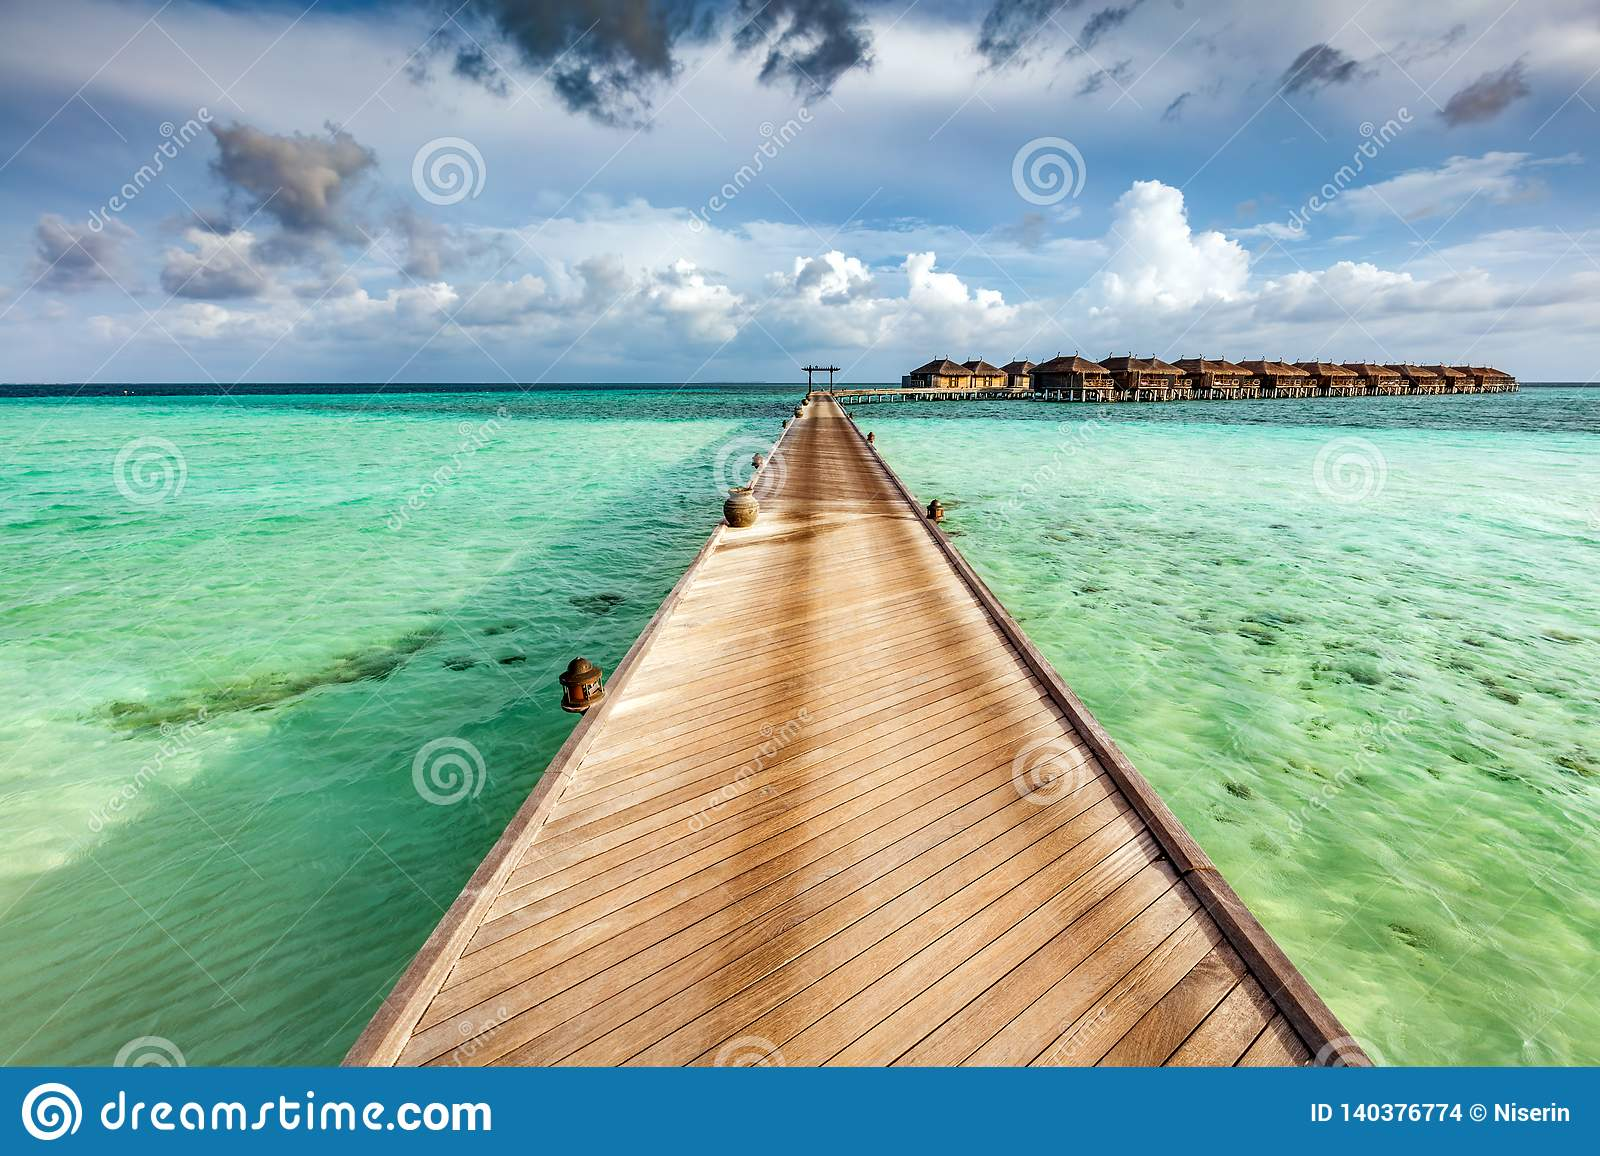 Wooden jetty on the ocean on Maldives Islands